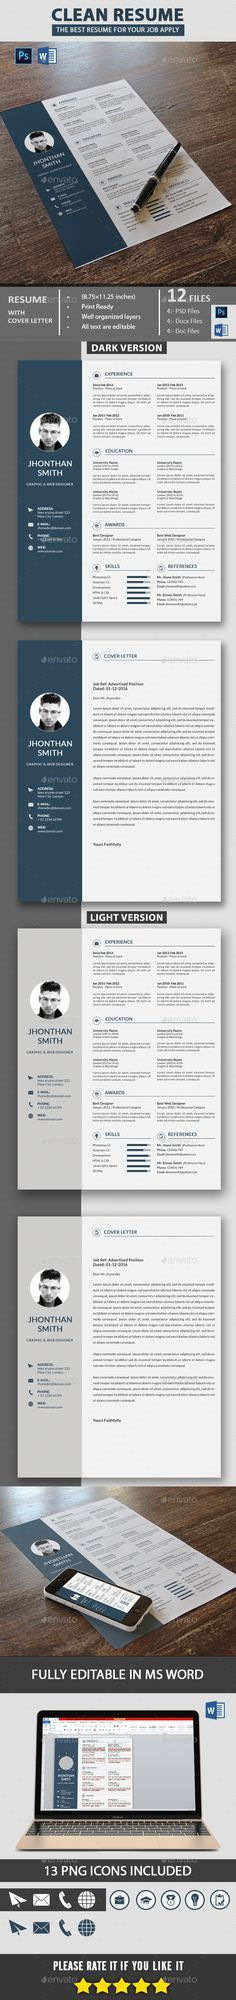 New Professional CV \/ Resume Templates with Cover Letter Design - graphic design resume template